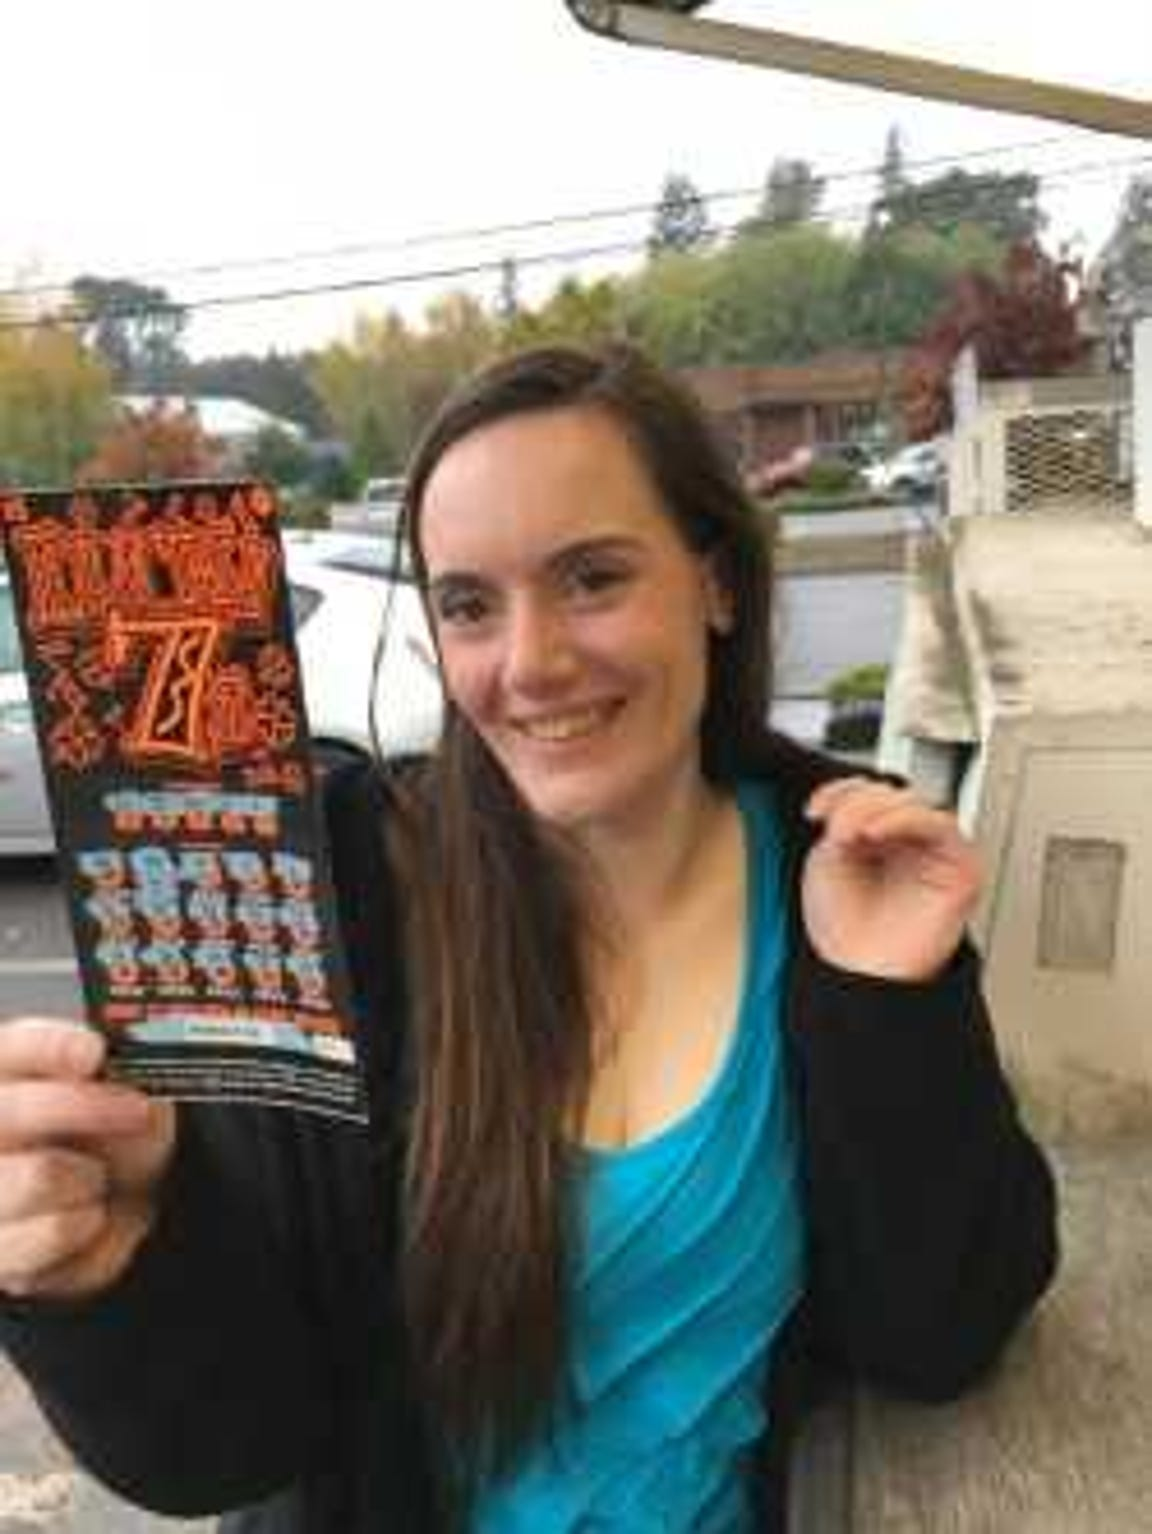 You are supposed to buy a lottery ticket the day of your release from prison, Trista said.